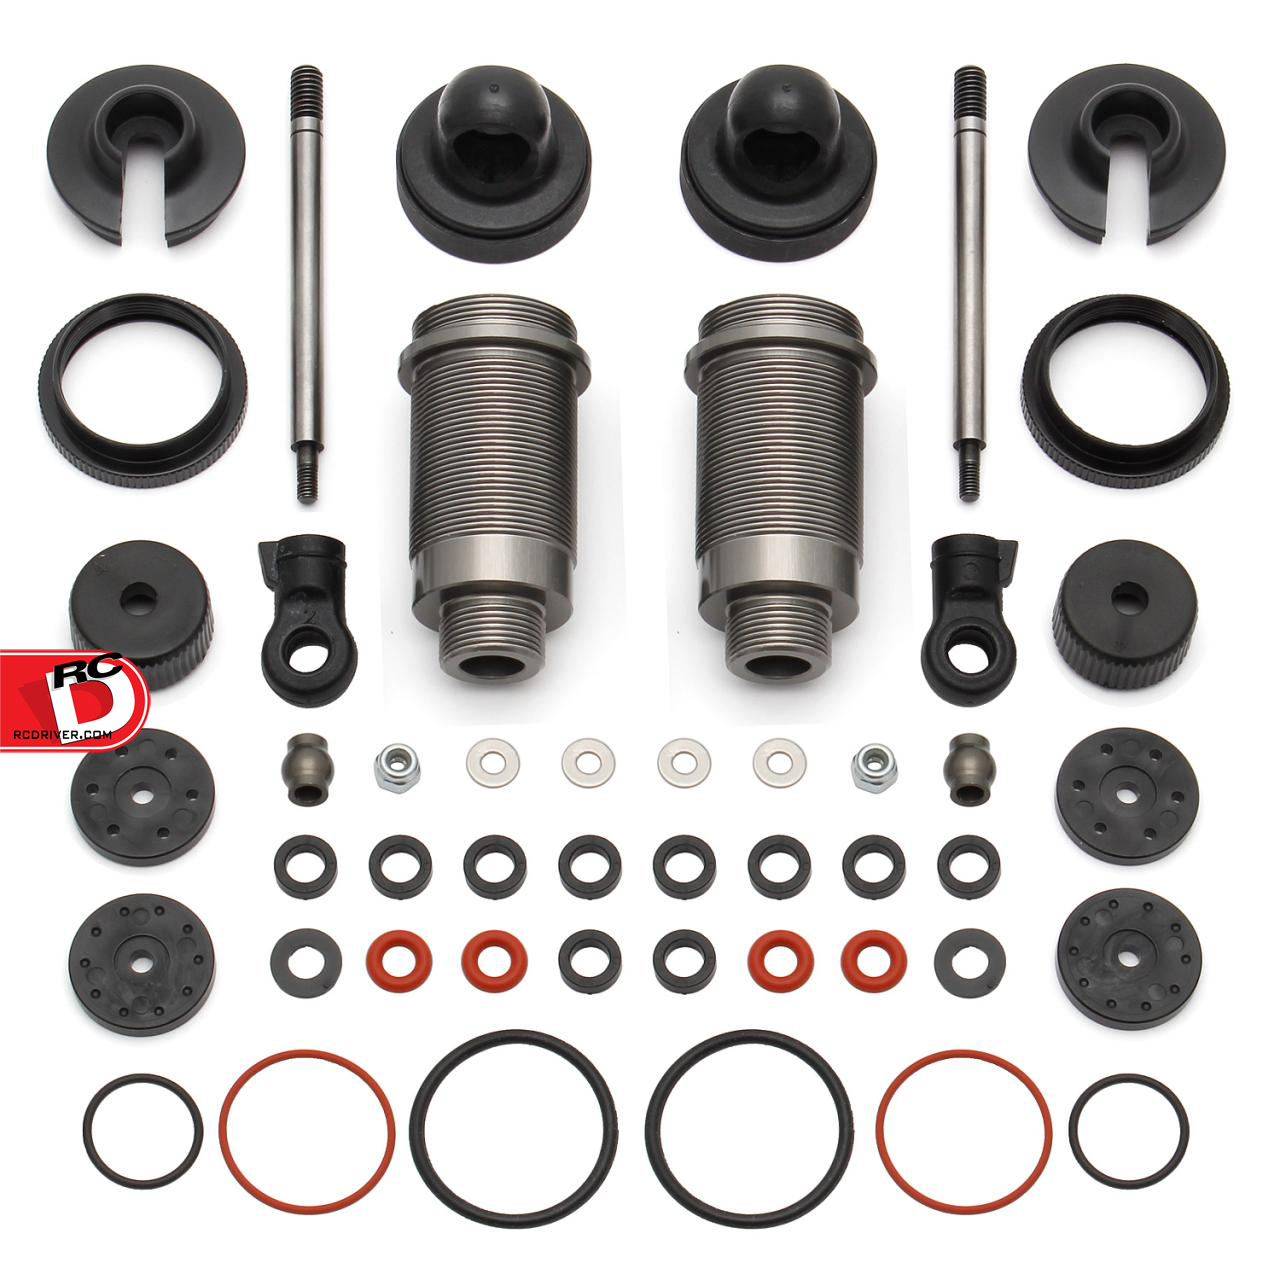 FT ProLite 4x4, ProSC 4x4, and ProRally 16mm Threaded Aluminum Shock Kit for Qualifier 4x4 Series copy